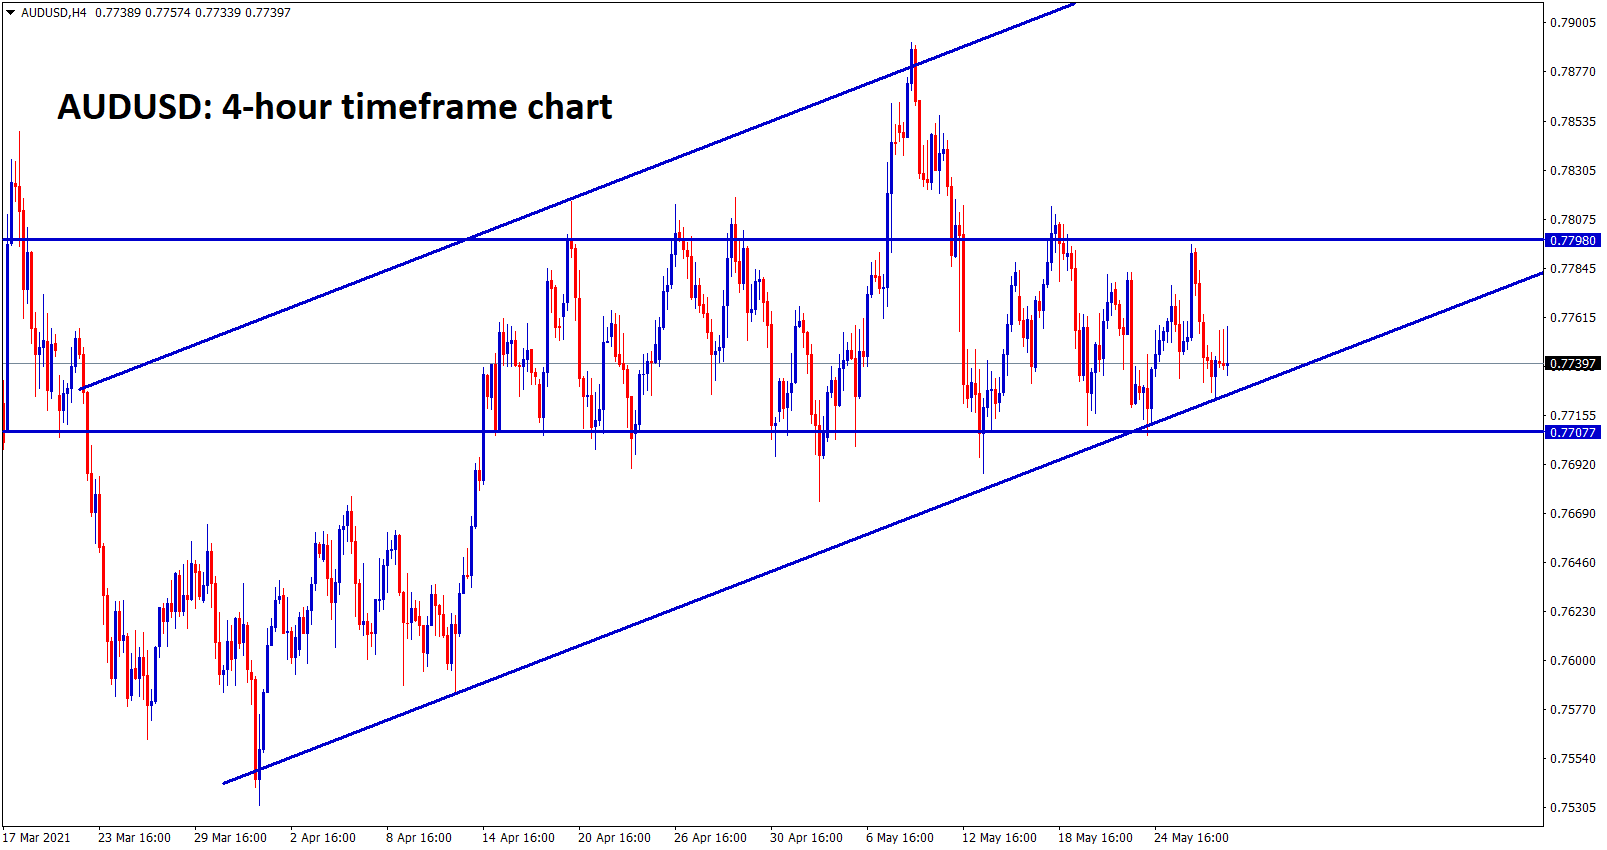 AUDUSD is still ranging in an uptrend line